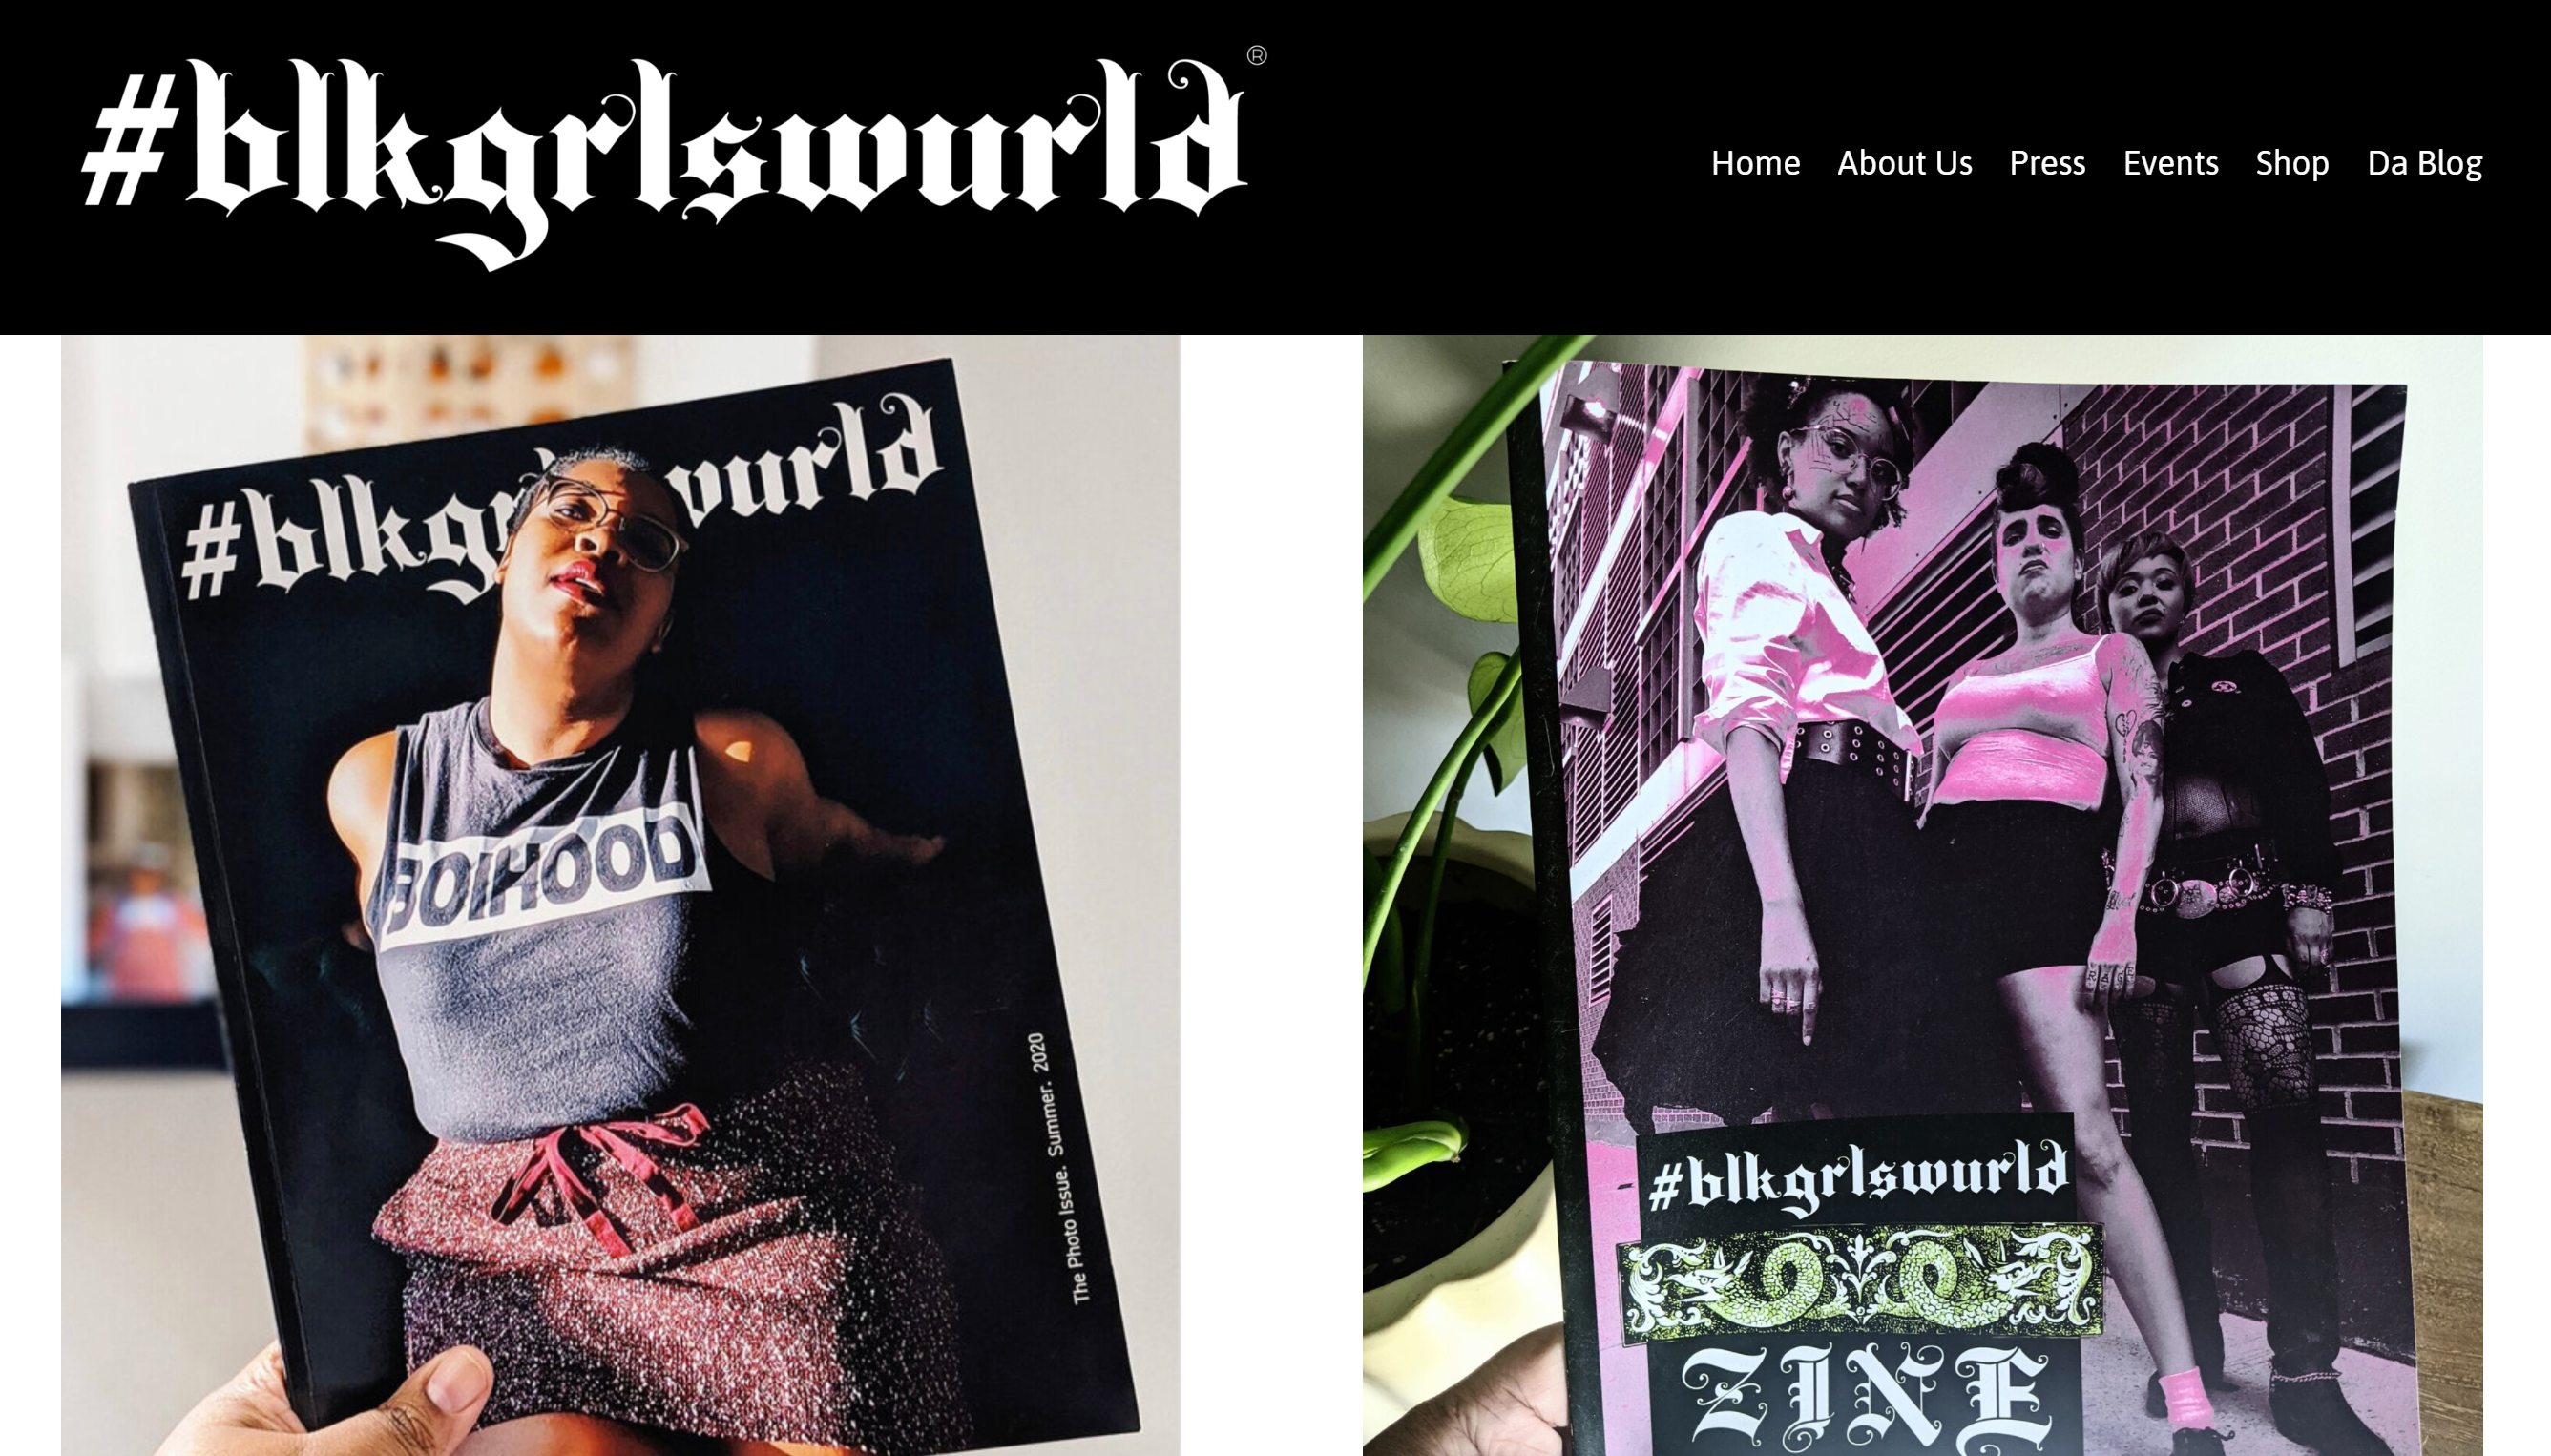 screenshot of their page showing the front covers of their most recent editions